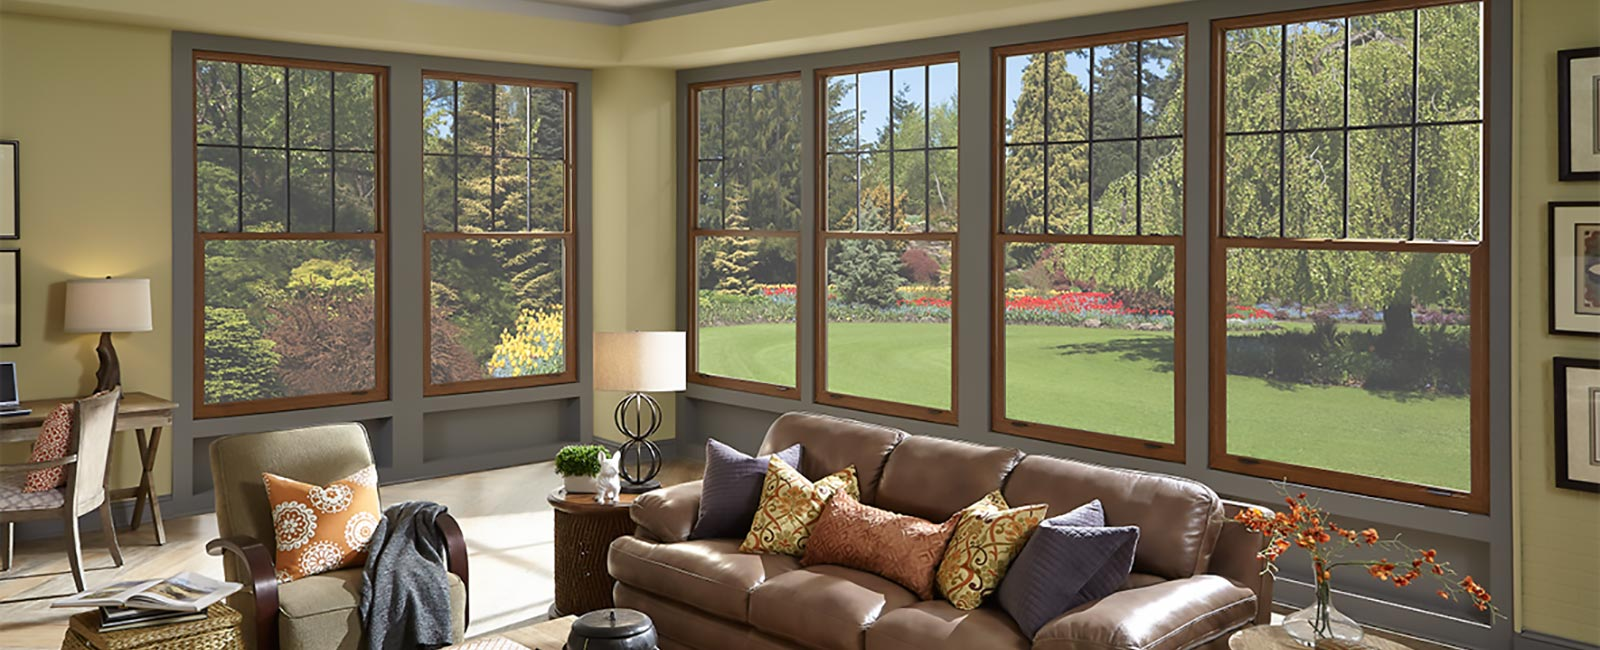 Impact Resistant Windows in a Country Styled Living Room